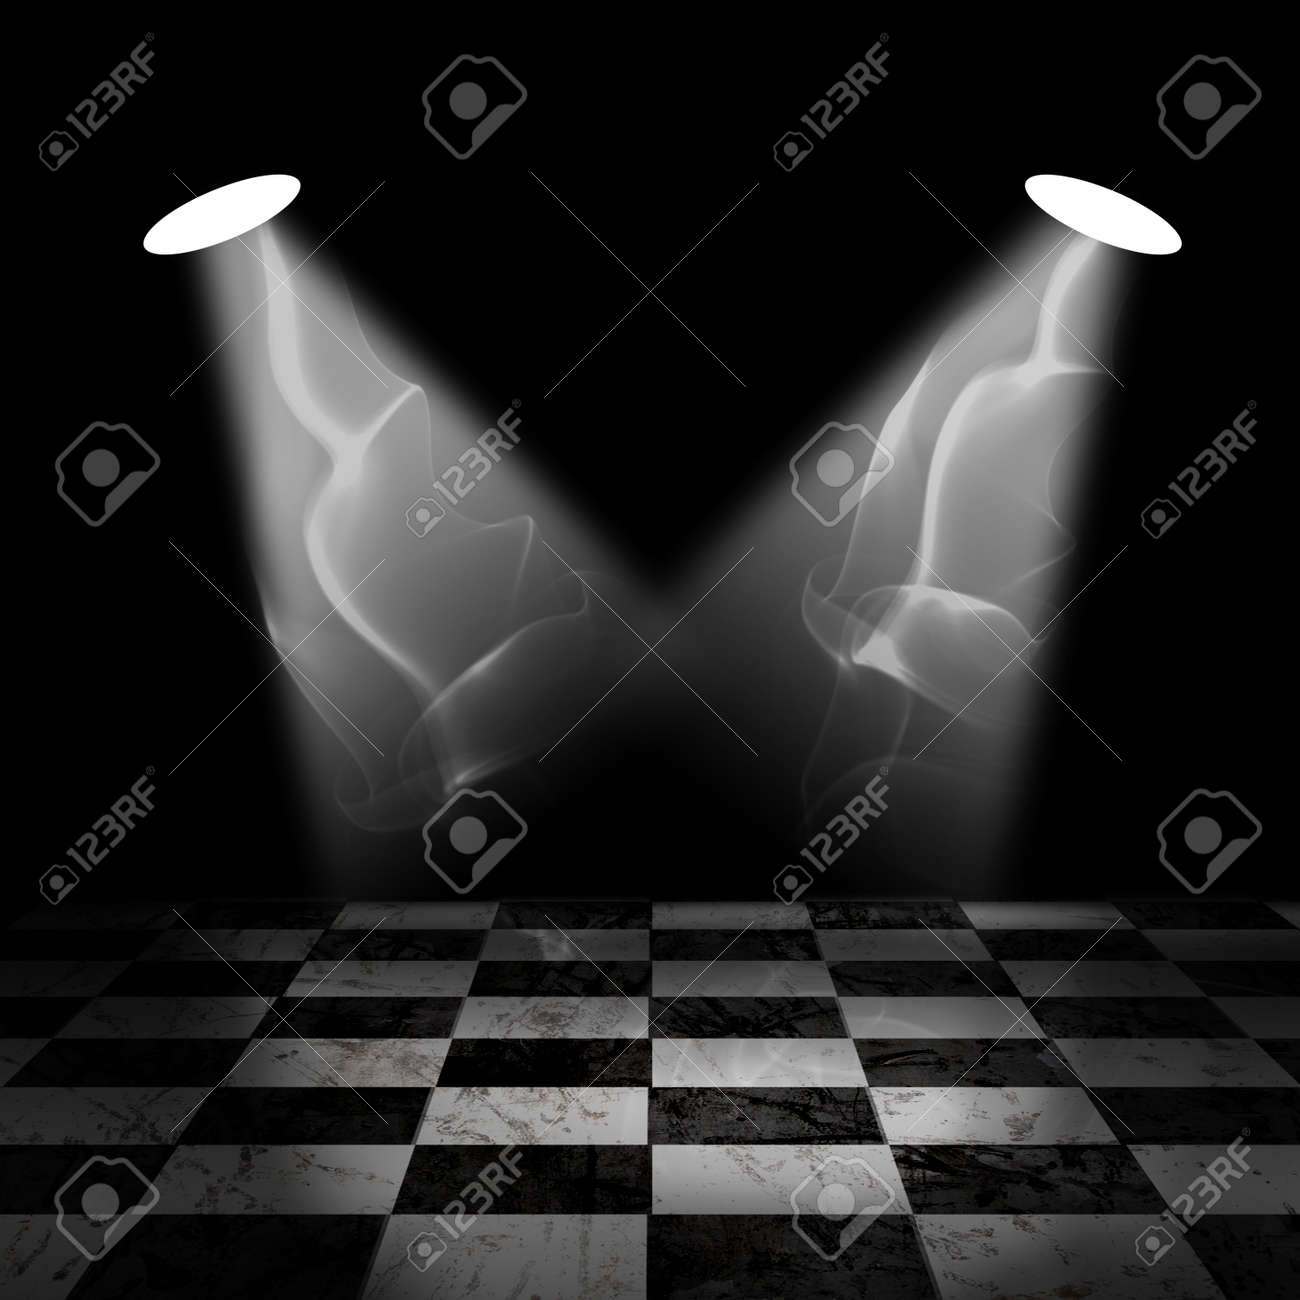 Black And White Check Grunge Room with spotlight and smoke Stock Photo - 13366148